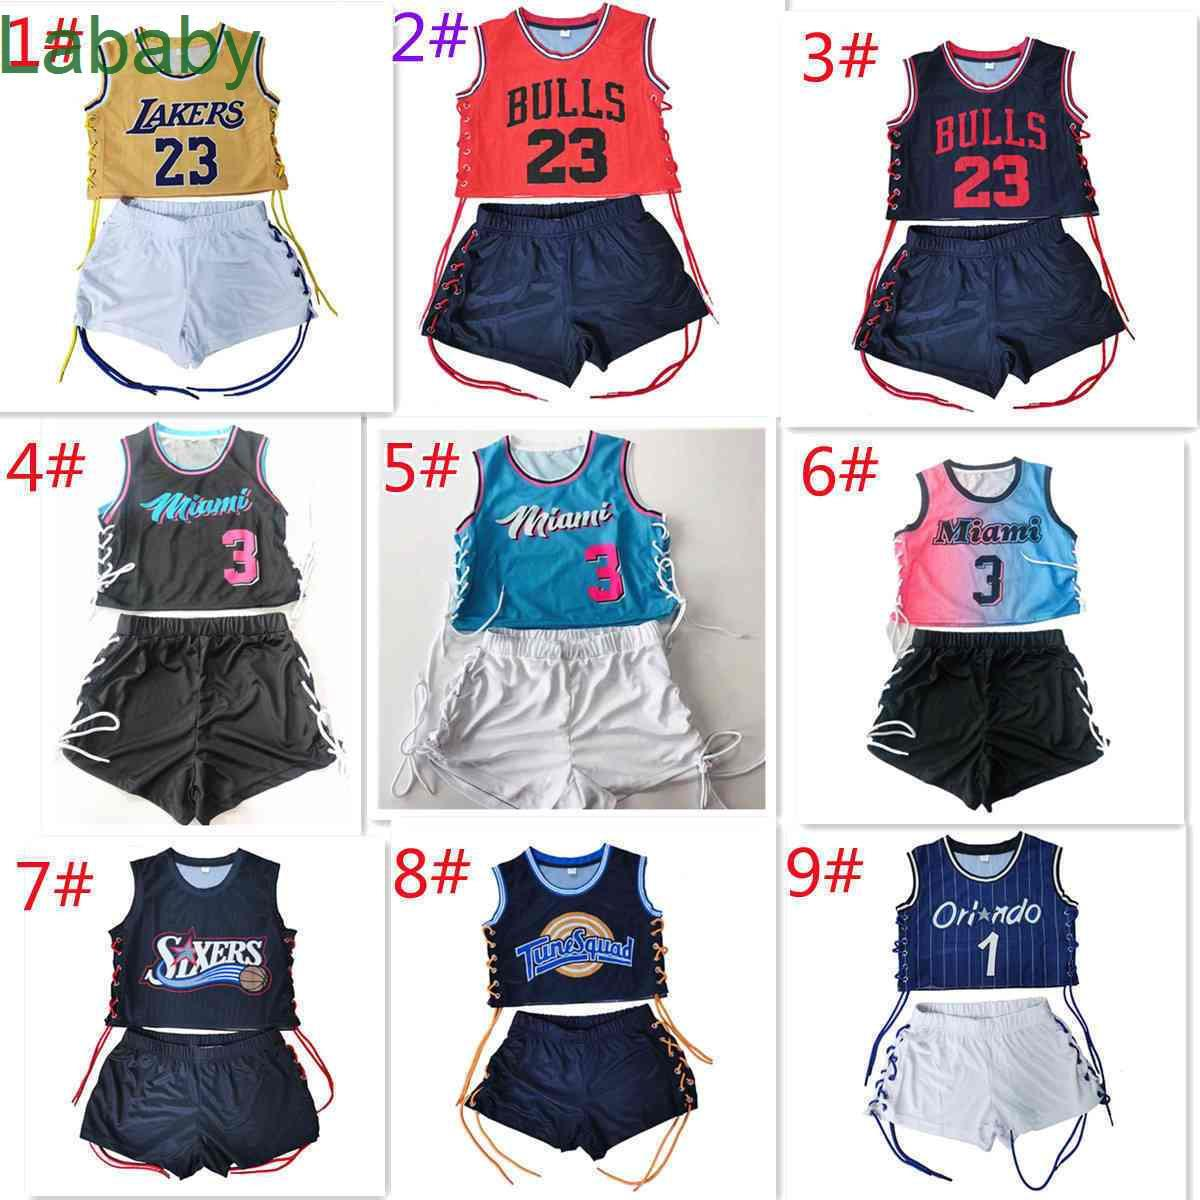 Womens Tracksuits 2 Two Piece Shorts Outfits Basketball sportswear Digital And Letter Printing Casual Fitness Clothing